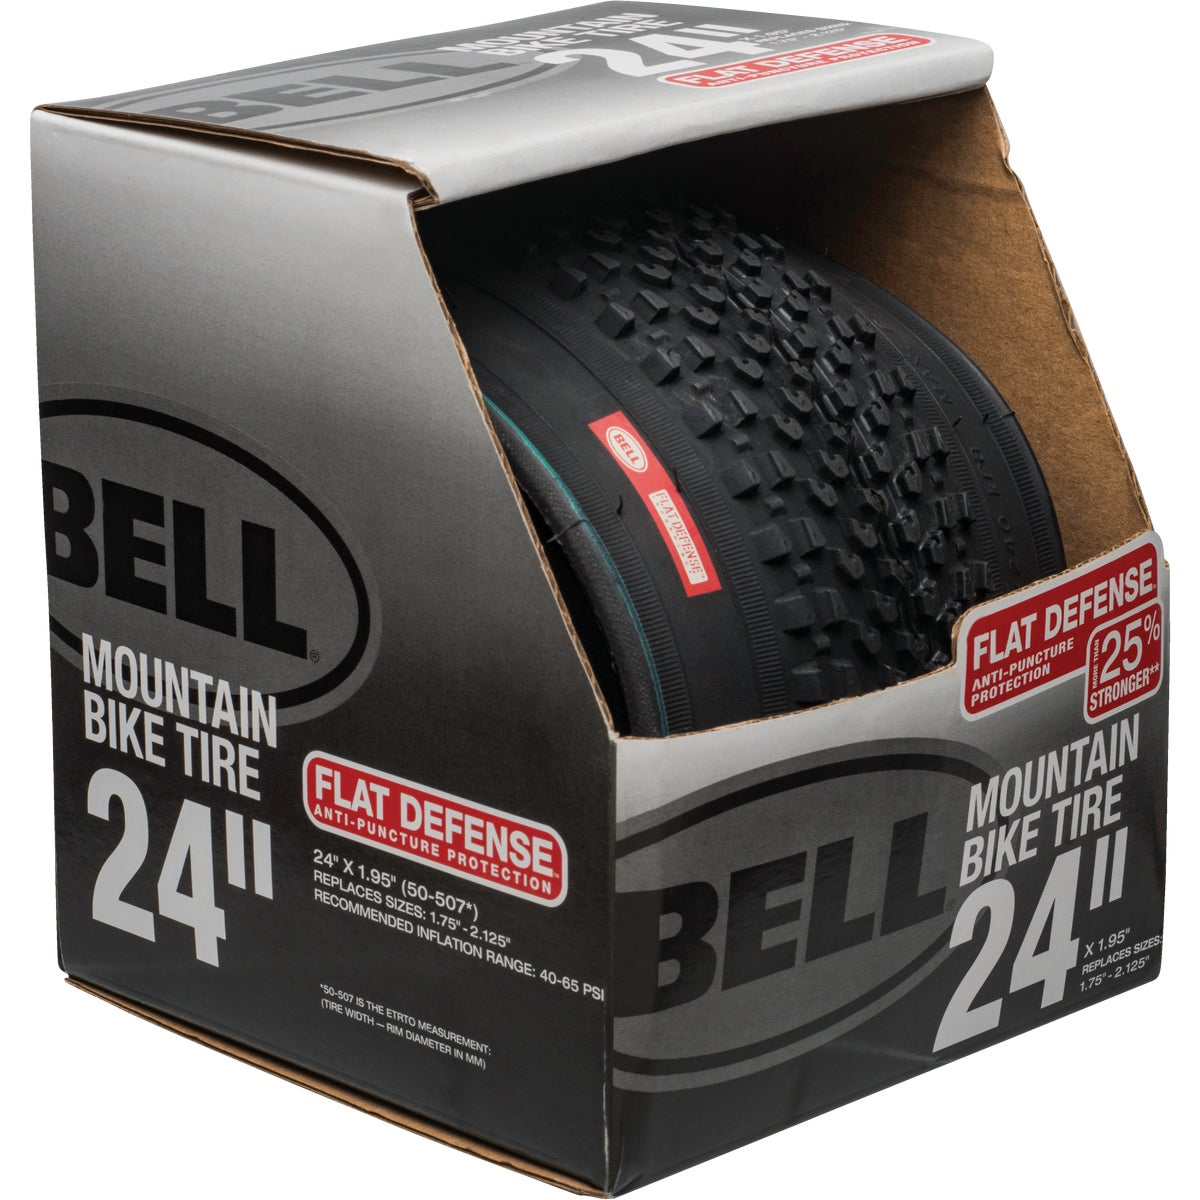 "24"" MOUNTAIN BIKE TIRE - 7014769 by Bell Sports"